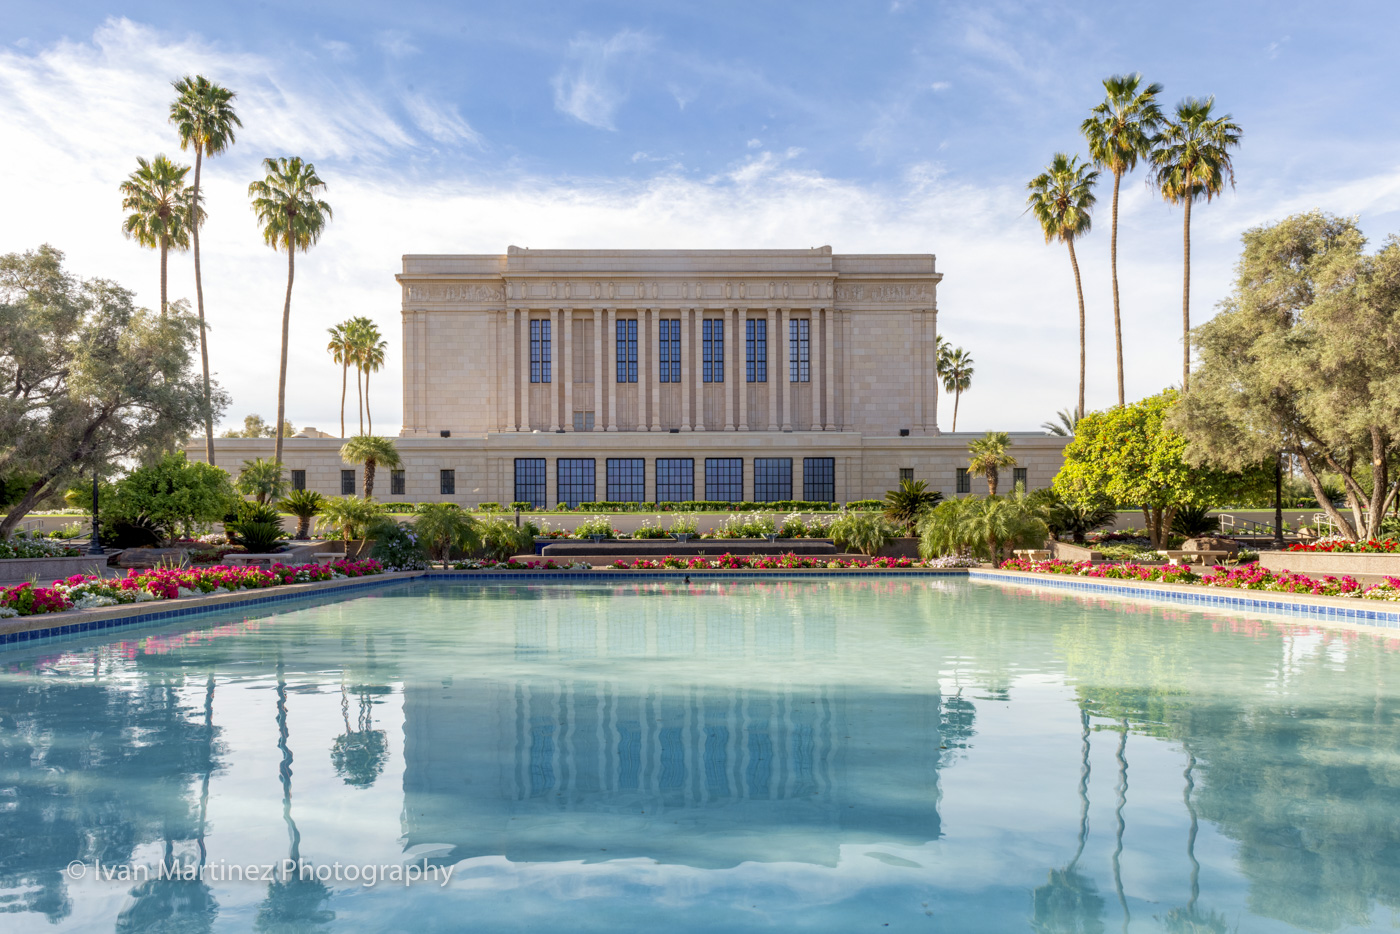 Map Of Arizona Lds Temples.Images Of The Mesa Lds Temple And Stage Set For 2018 Easter Pageant